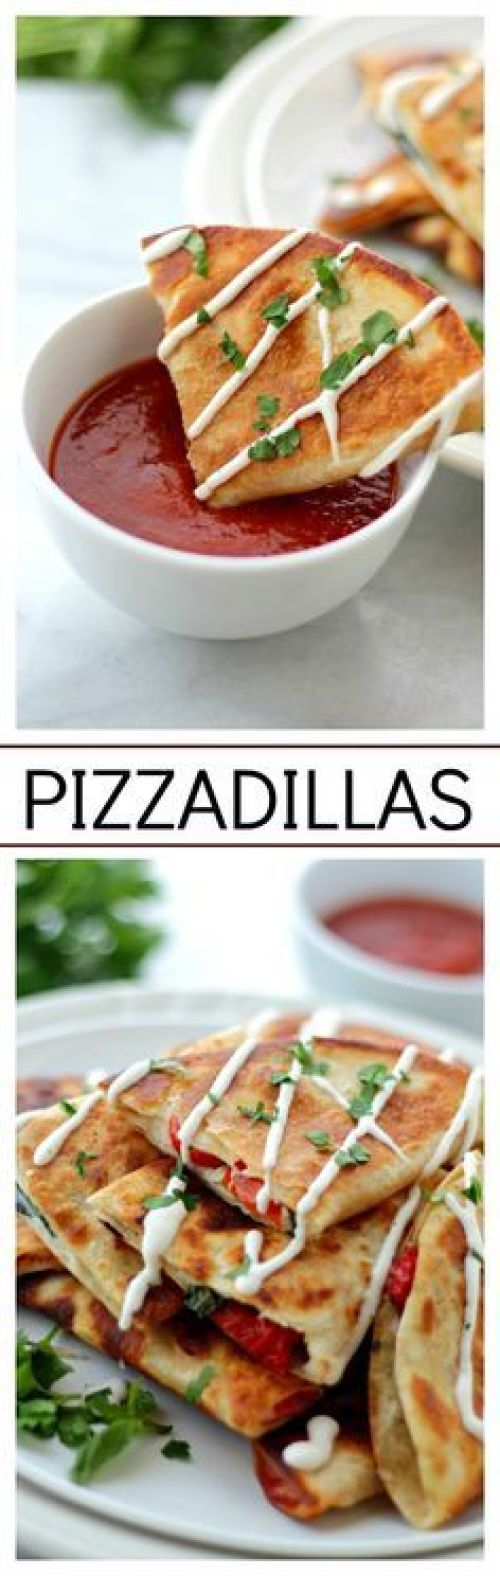 Quick Dinner Ideas - Pizzadillas Recipe via Diethood